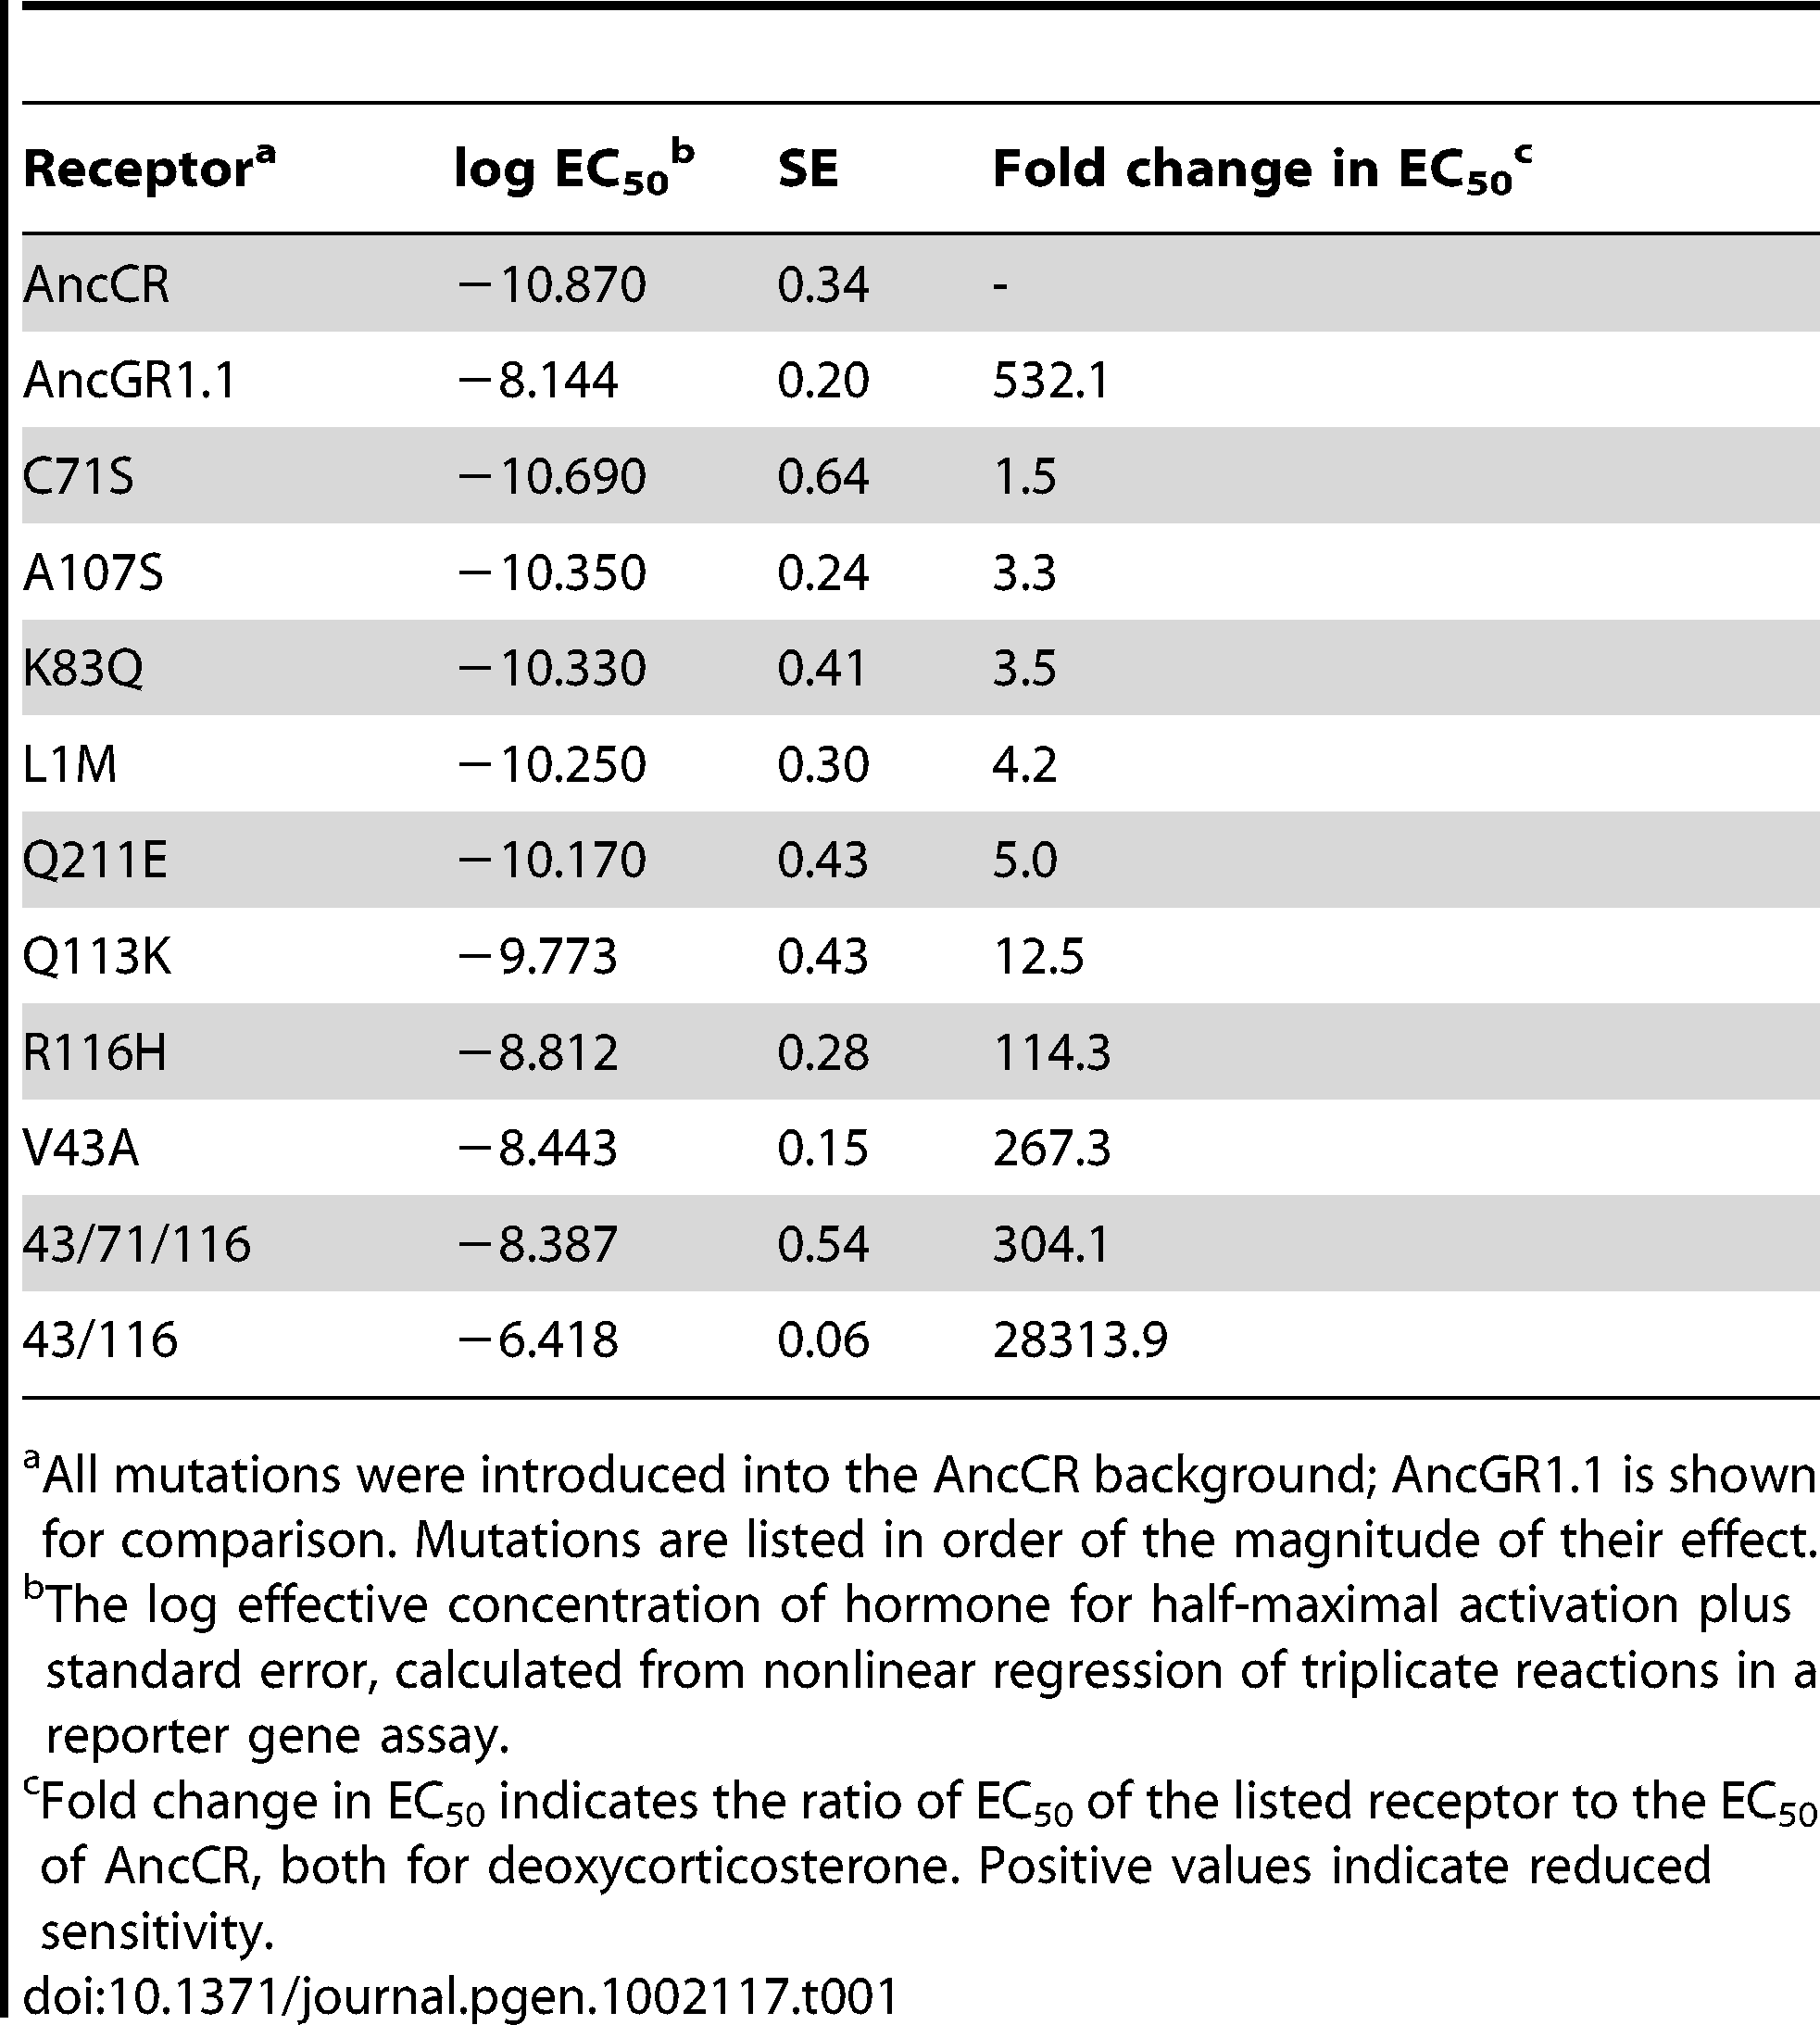 Response of ancestral and mutant receptors to 11-deoxycorticosterone (DOC).